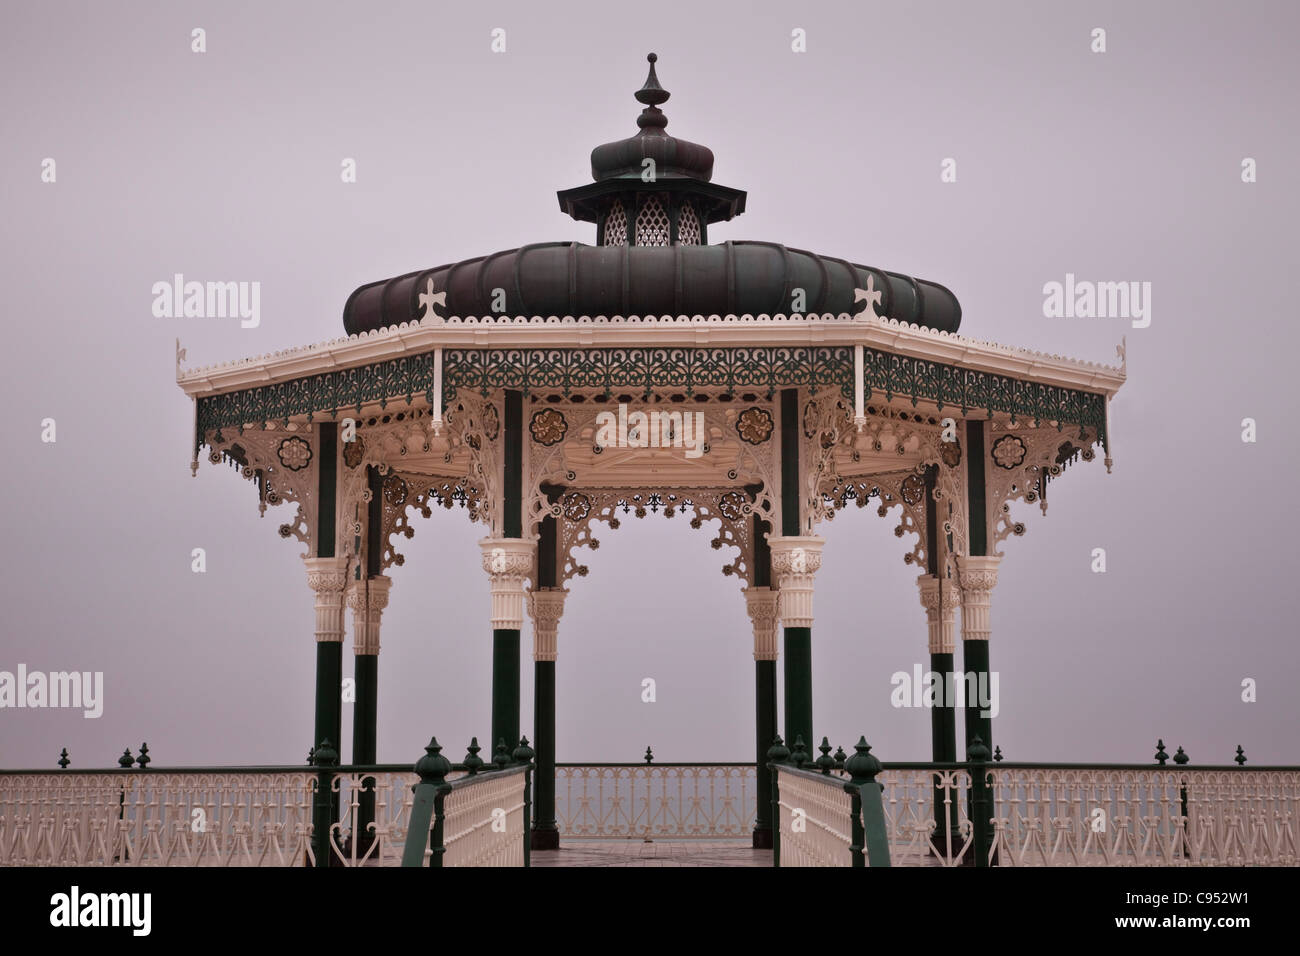 The Victorian Bandstand (recently restored), Brighton, Sussex, England - Stock Image